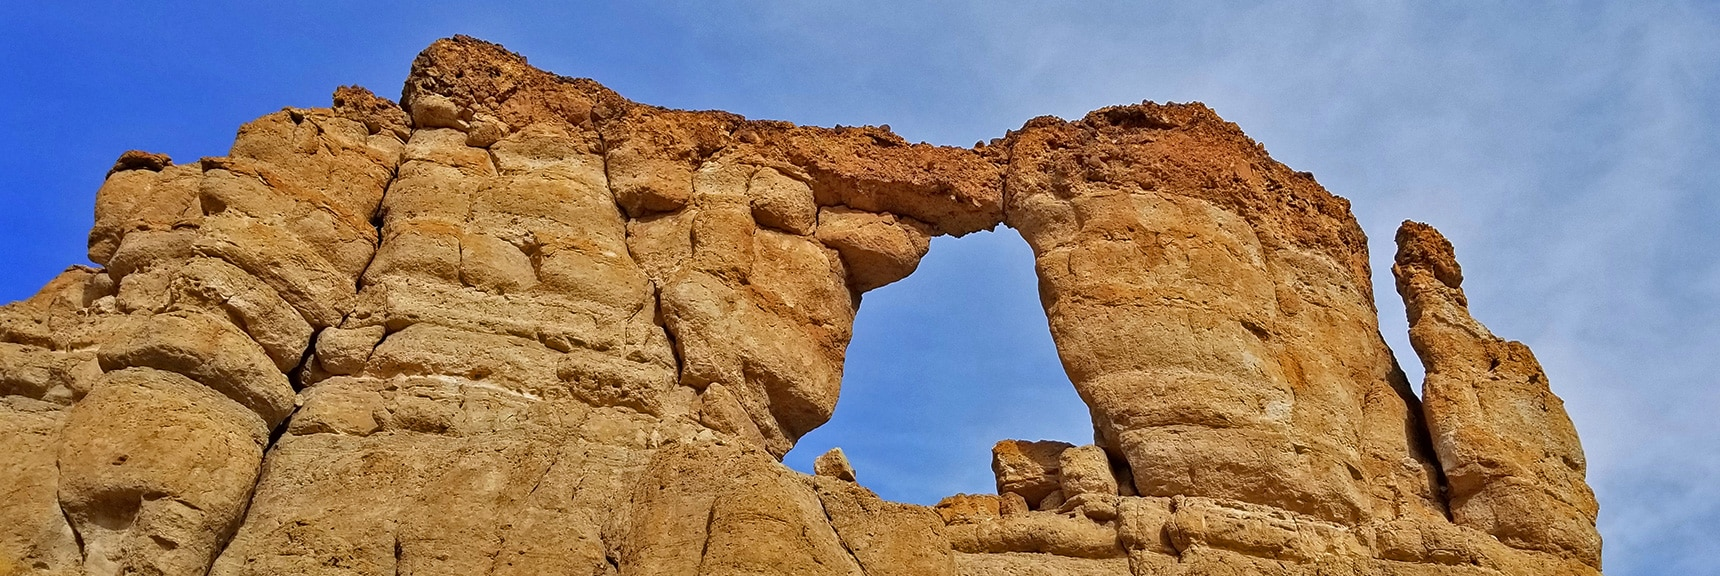 Liberty Bell Arch | Arizona Hot Spring | Liberty Bell Arch | Lake Mead National Recreation Area, Arizona